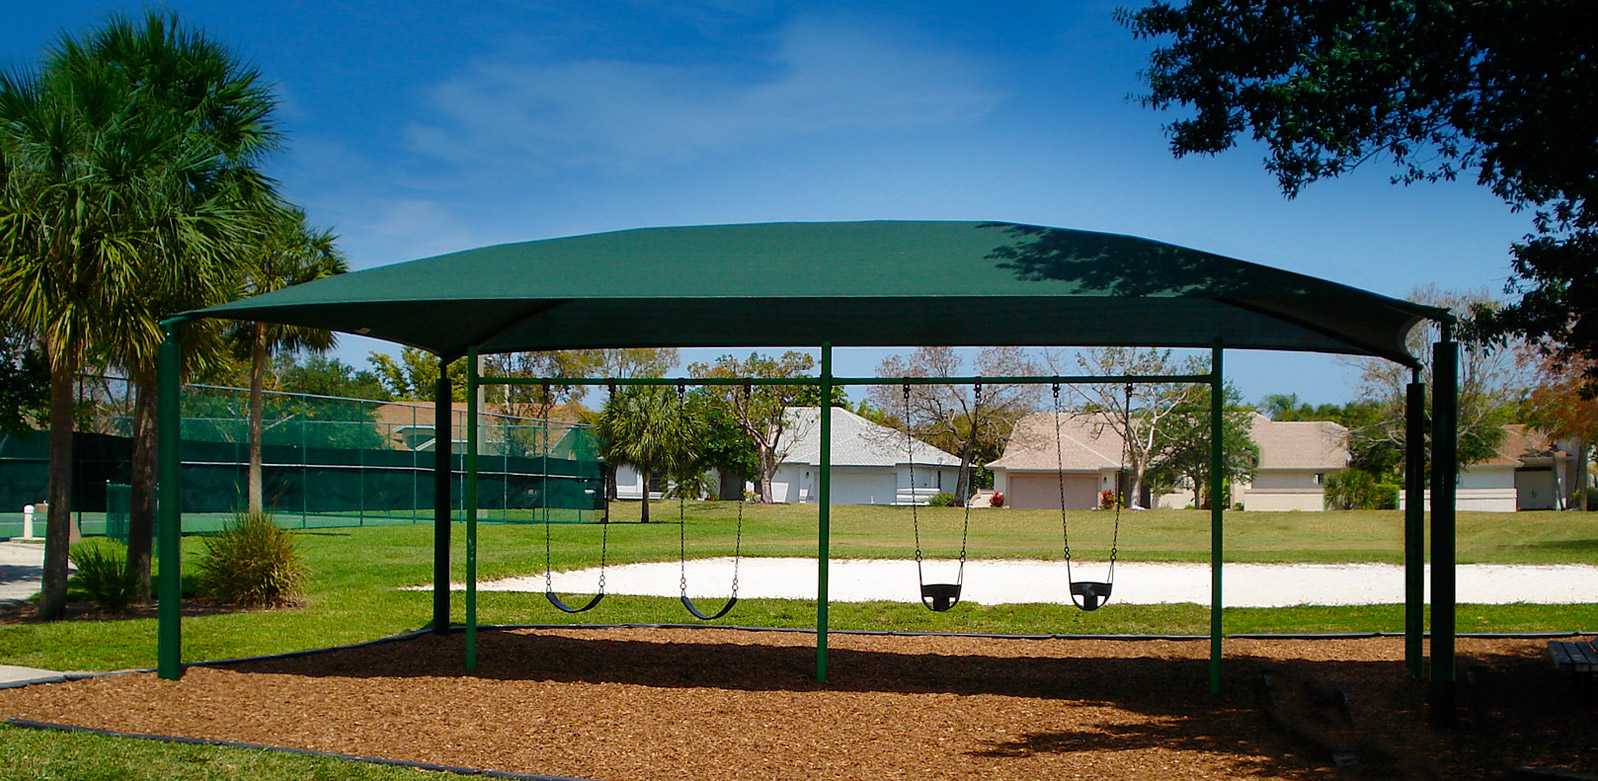 slider PlaygroundWidescr4 Playgrounds Shade Structures to Protect Children & Shade Systems fabric structures for sun protection on playgrounds